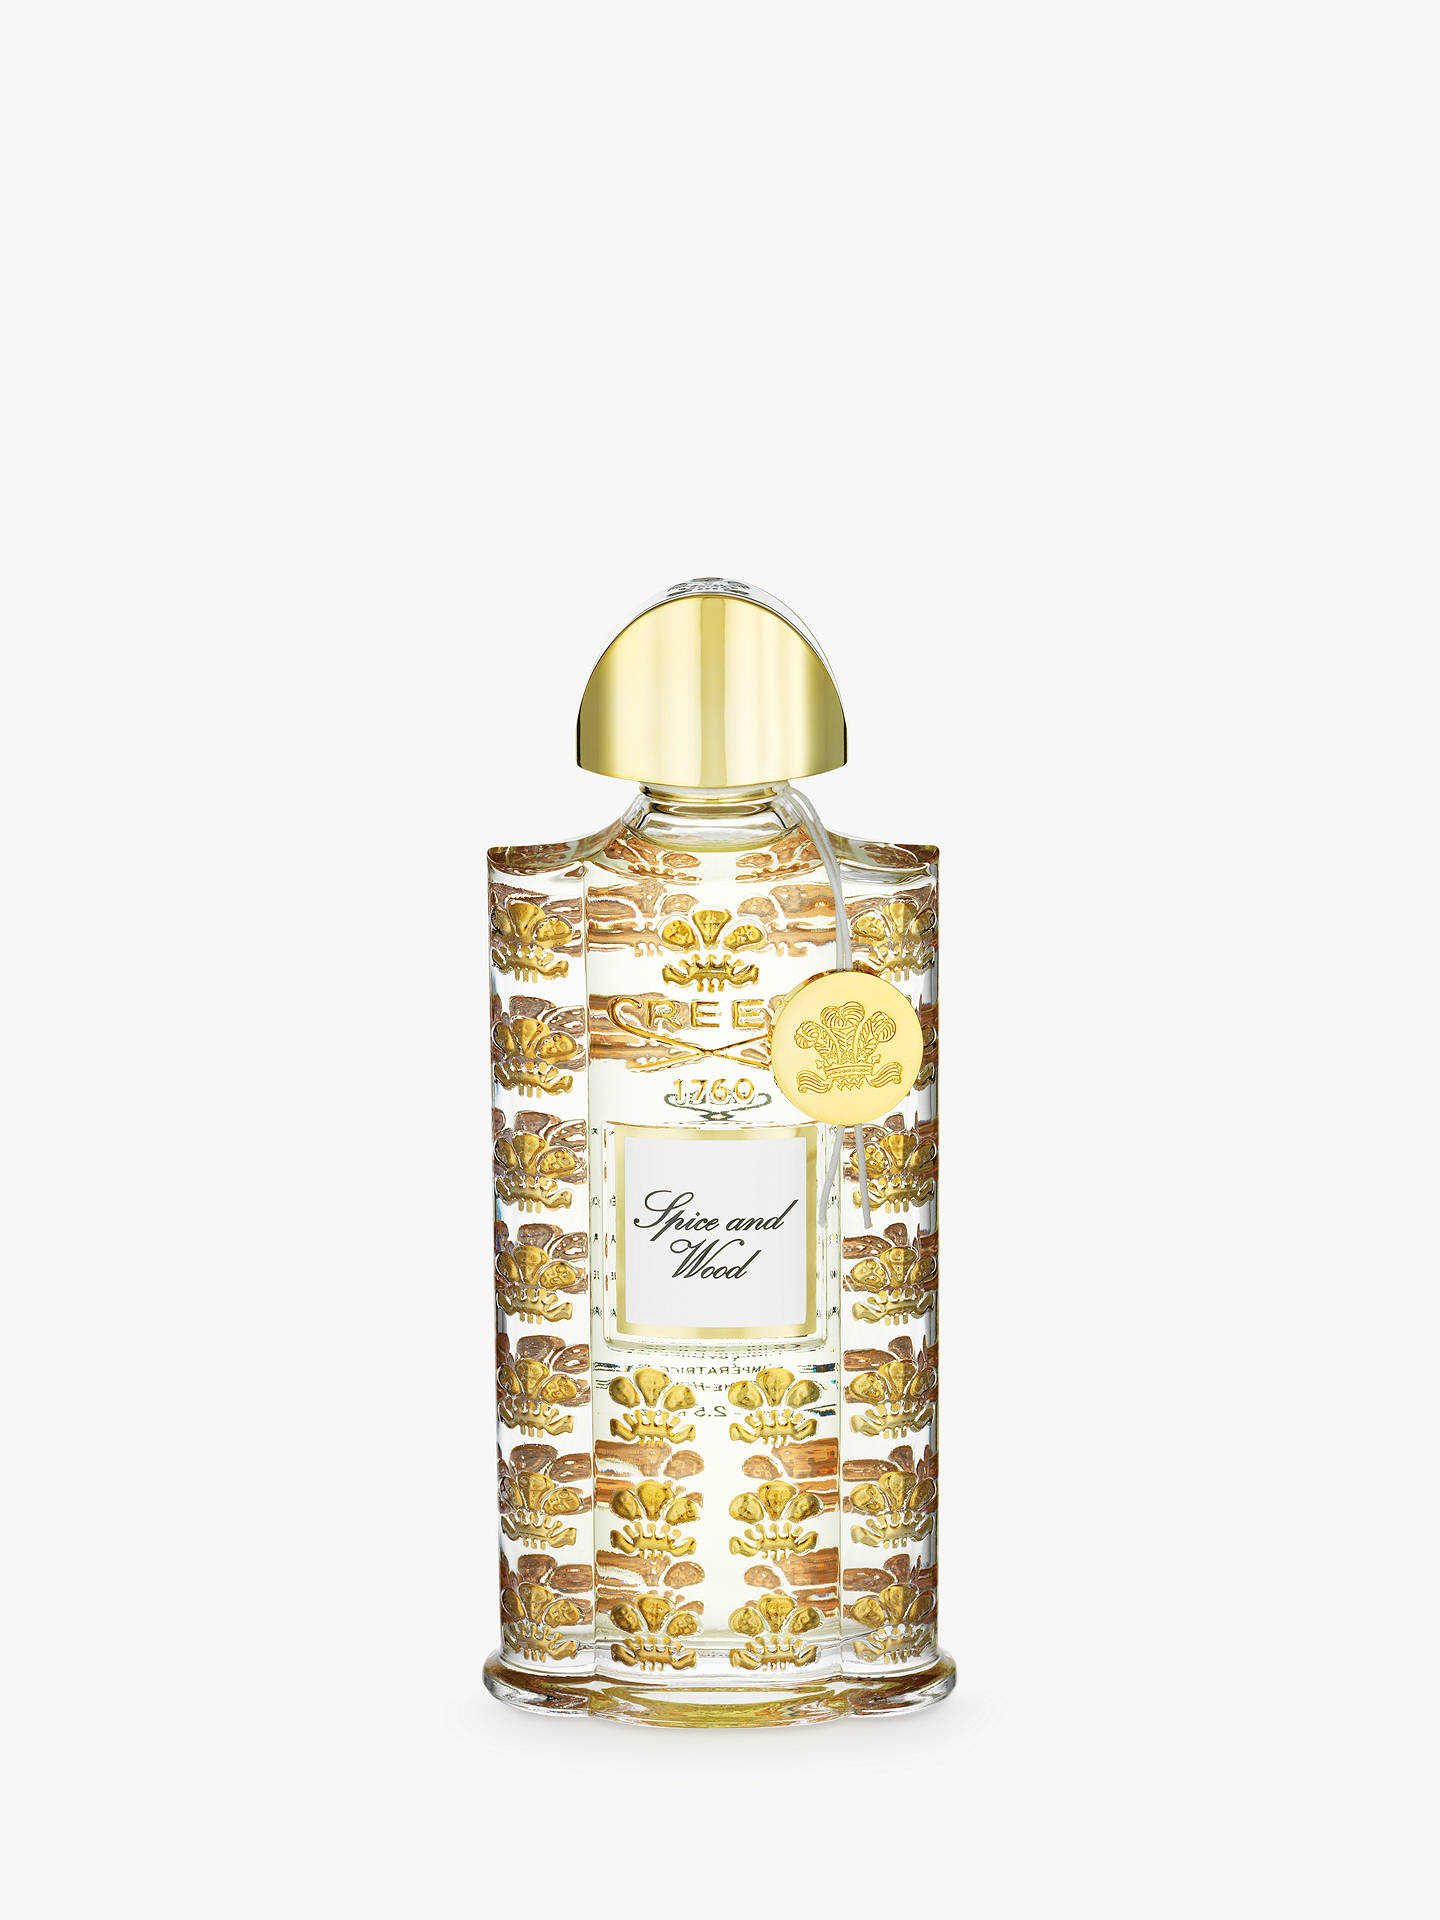 Creed Royal Exclusives Spice And Wood Eau De Parfum 75ml At John